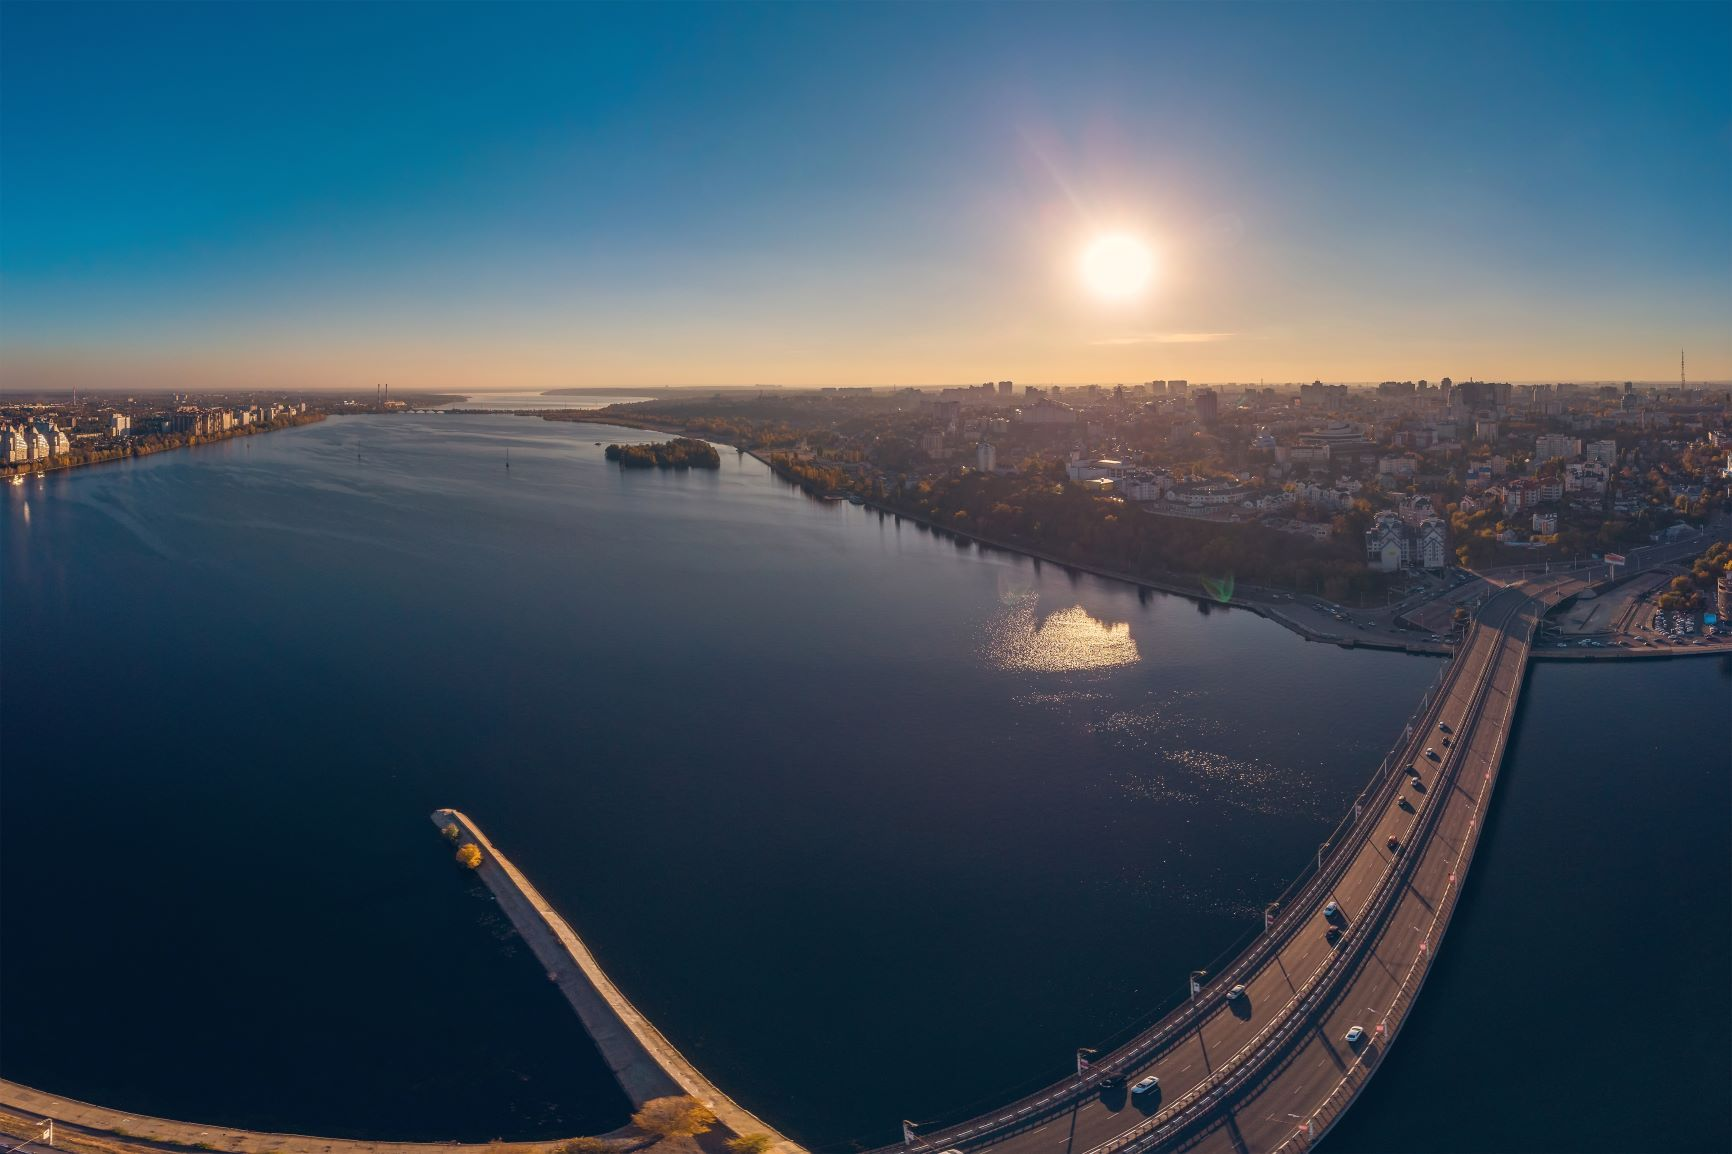 Open All-Russian Competition for the development of Petrovskaya Embankment in Voronezh